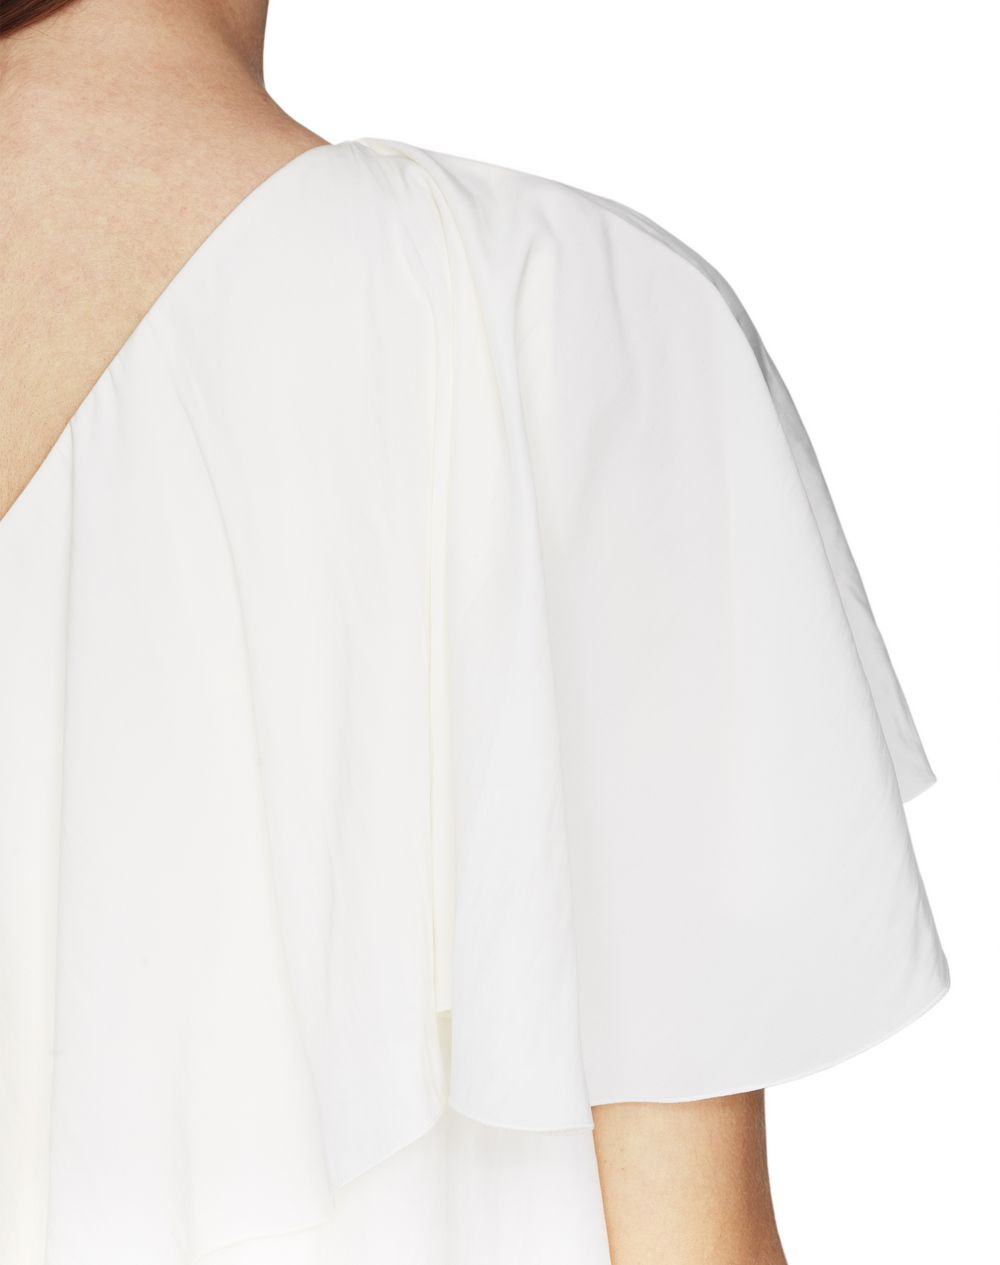 IVORY ASYMMETRICAL DRESS - Lanvin